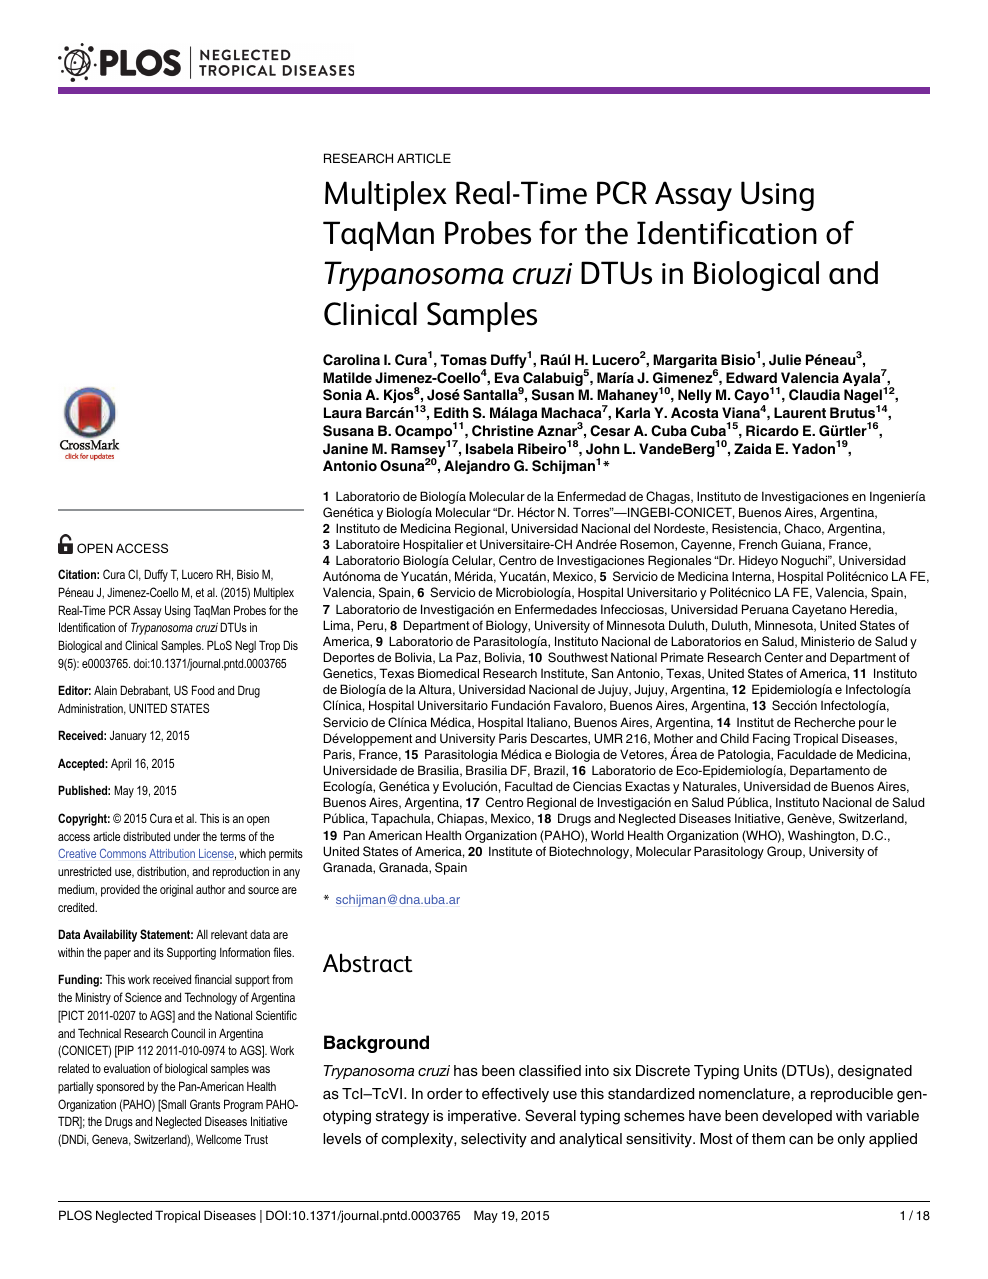 Multiplex Real-Time PCR Assay Using TaqMan Probes for the